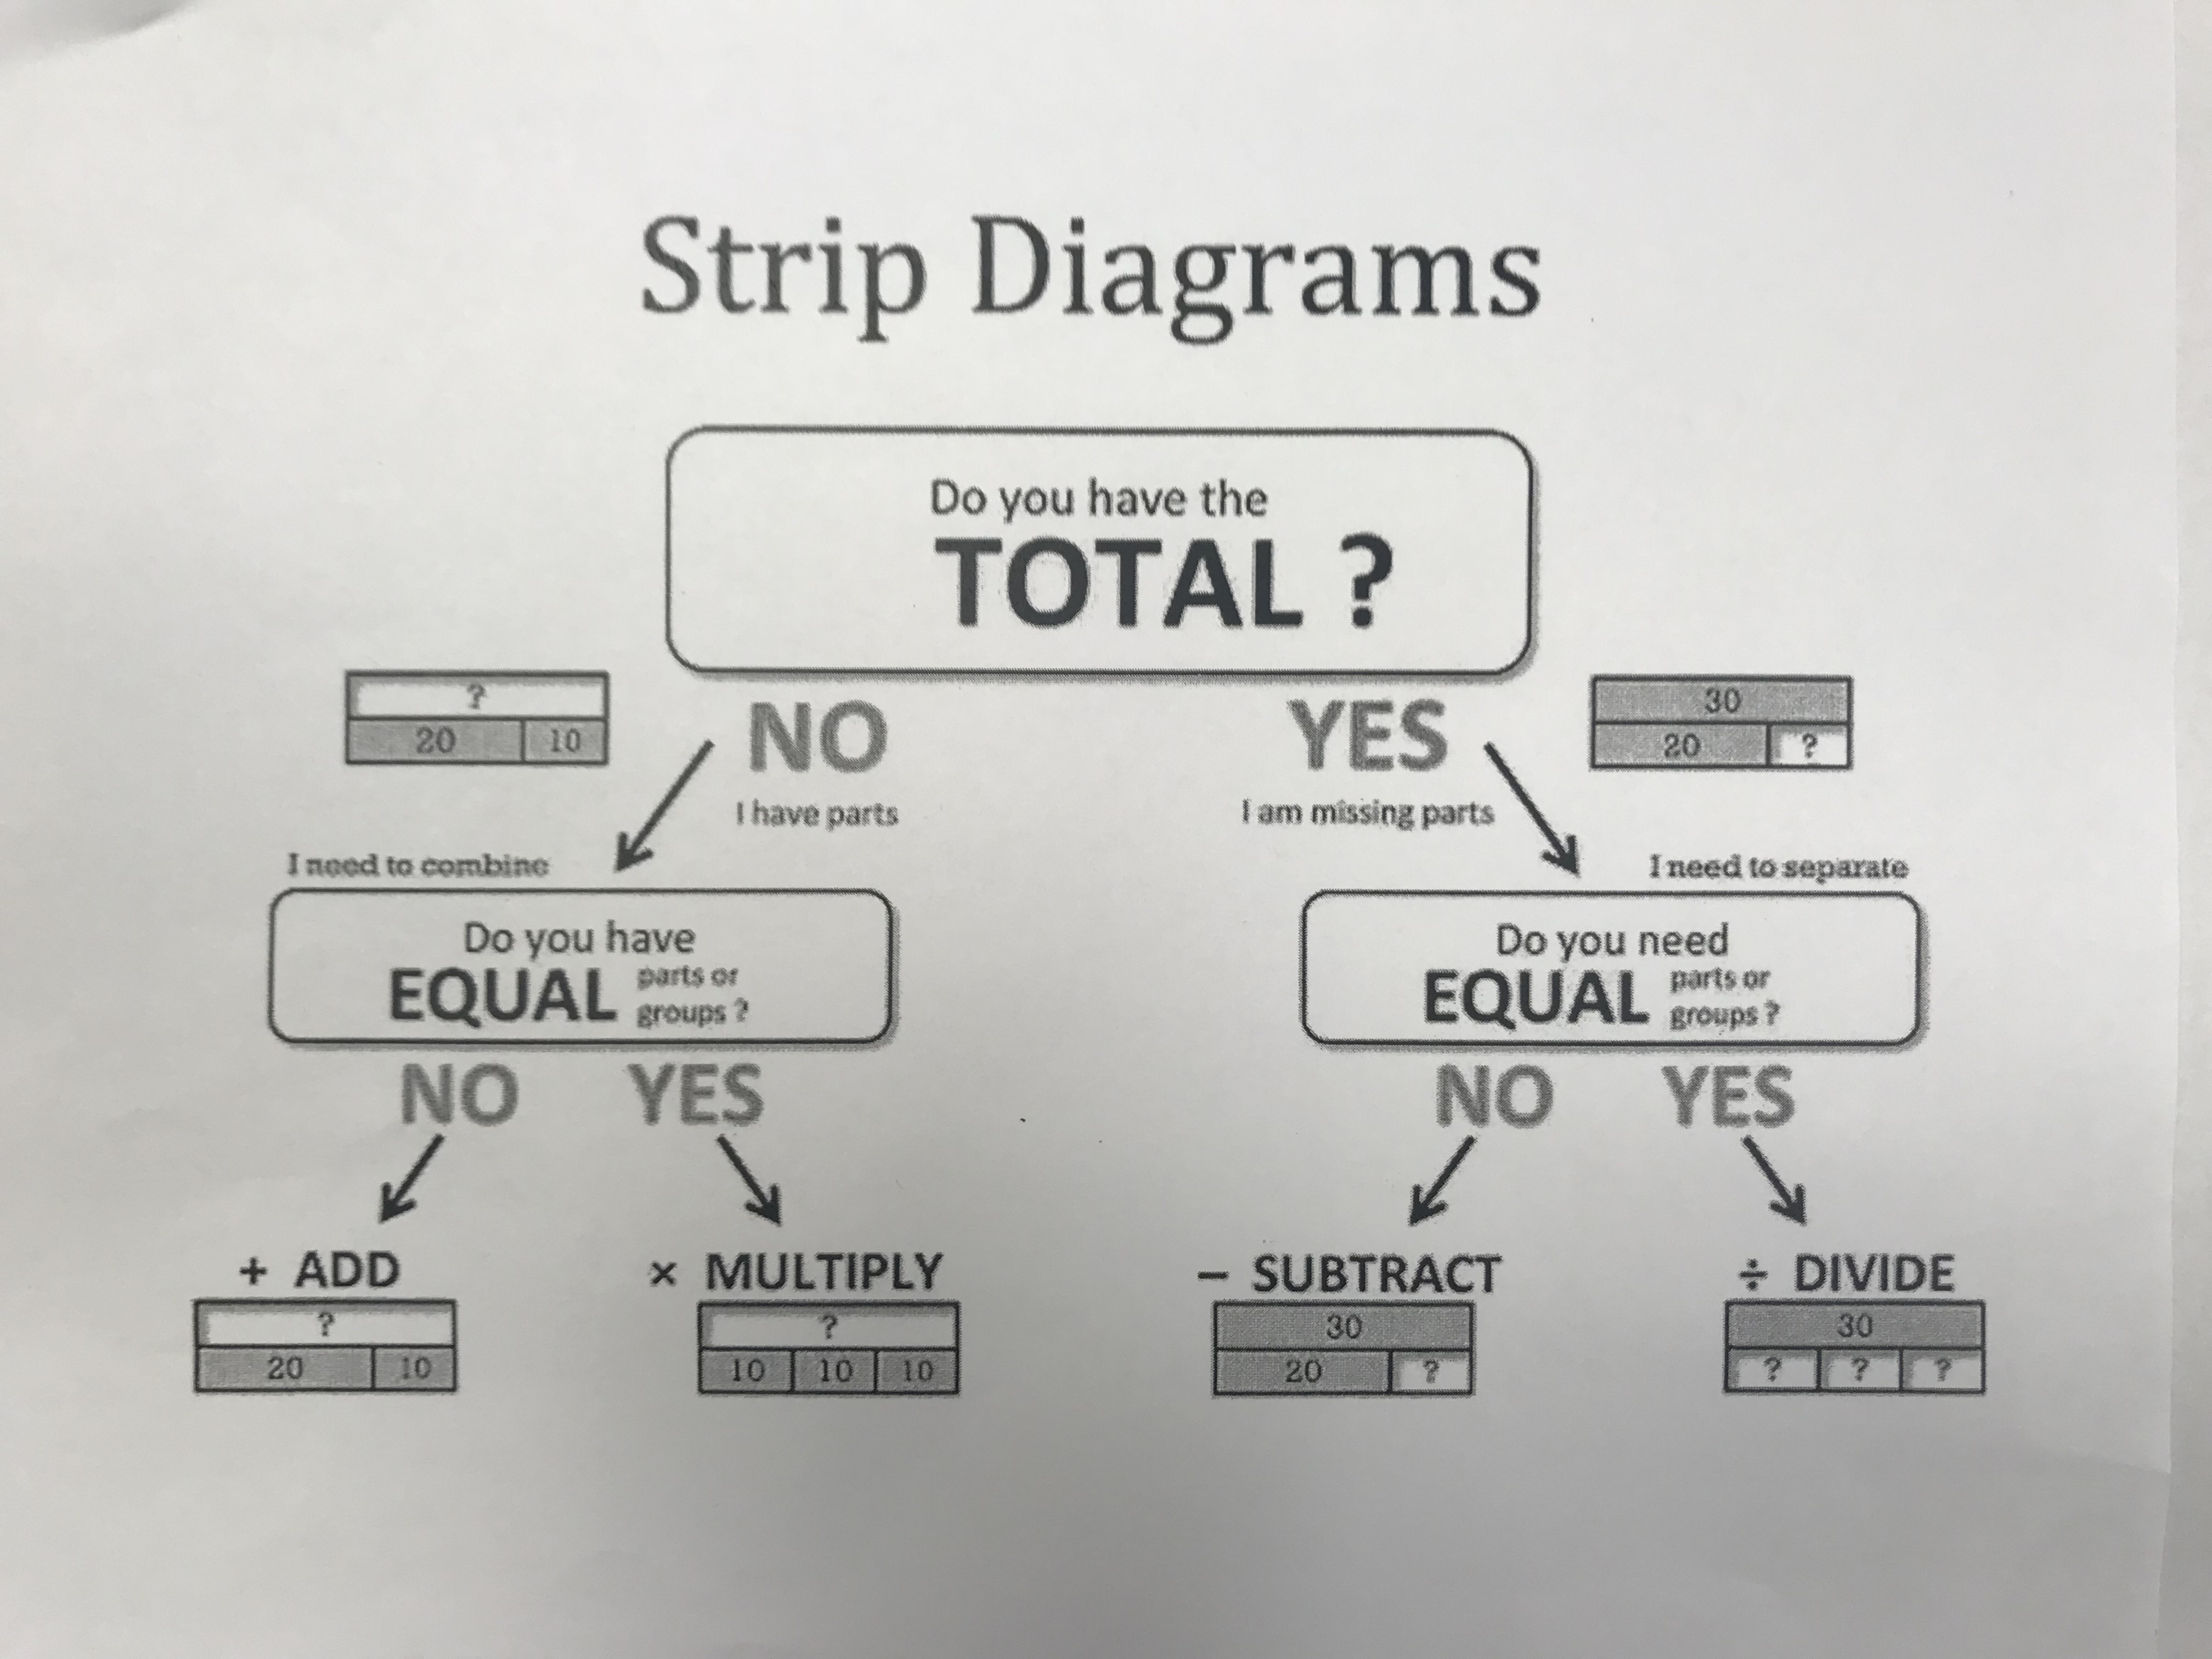 strip diagram anchor chart how to wire outside lights bowie adriana math resources and charts problem solving flow diagrams